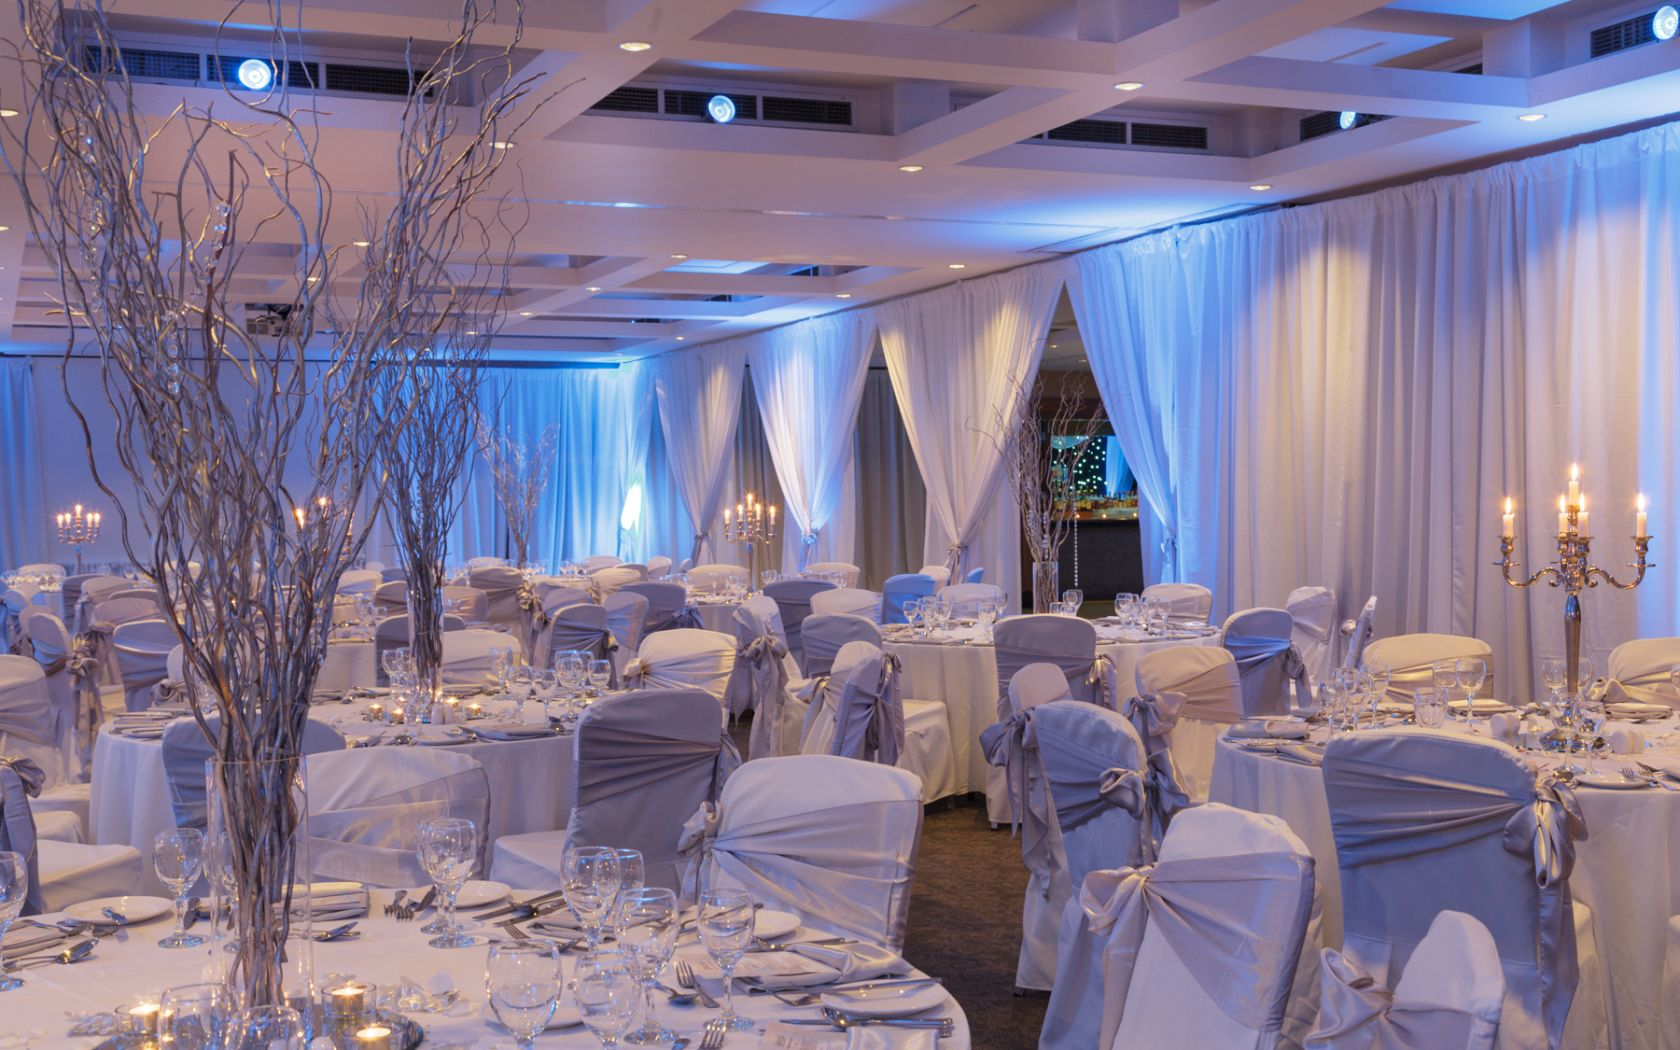 Castleknock Hotel Winter Themed setup